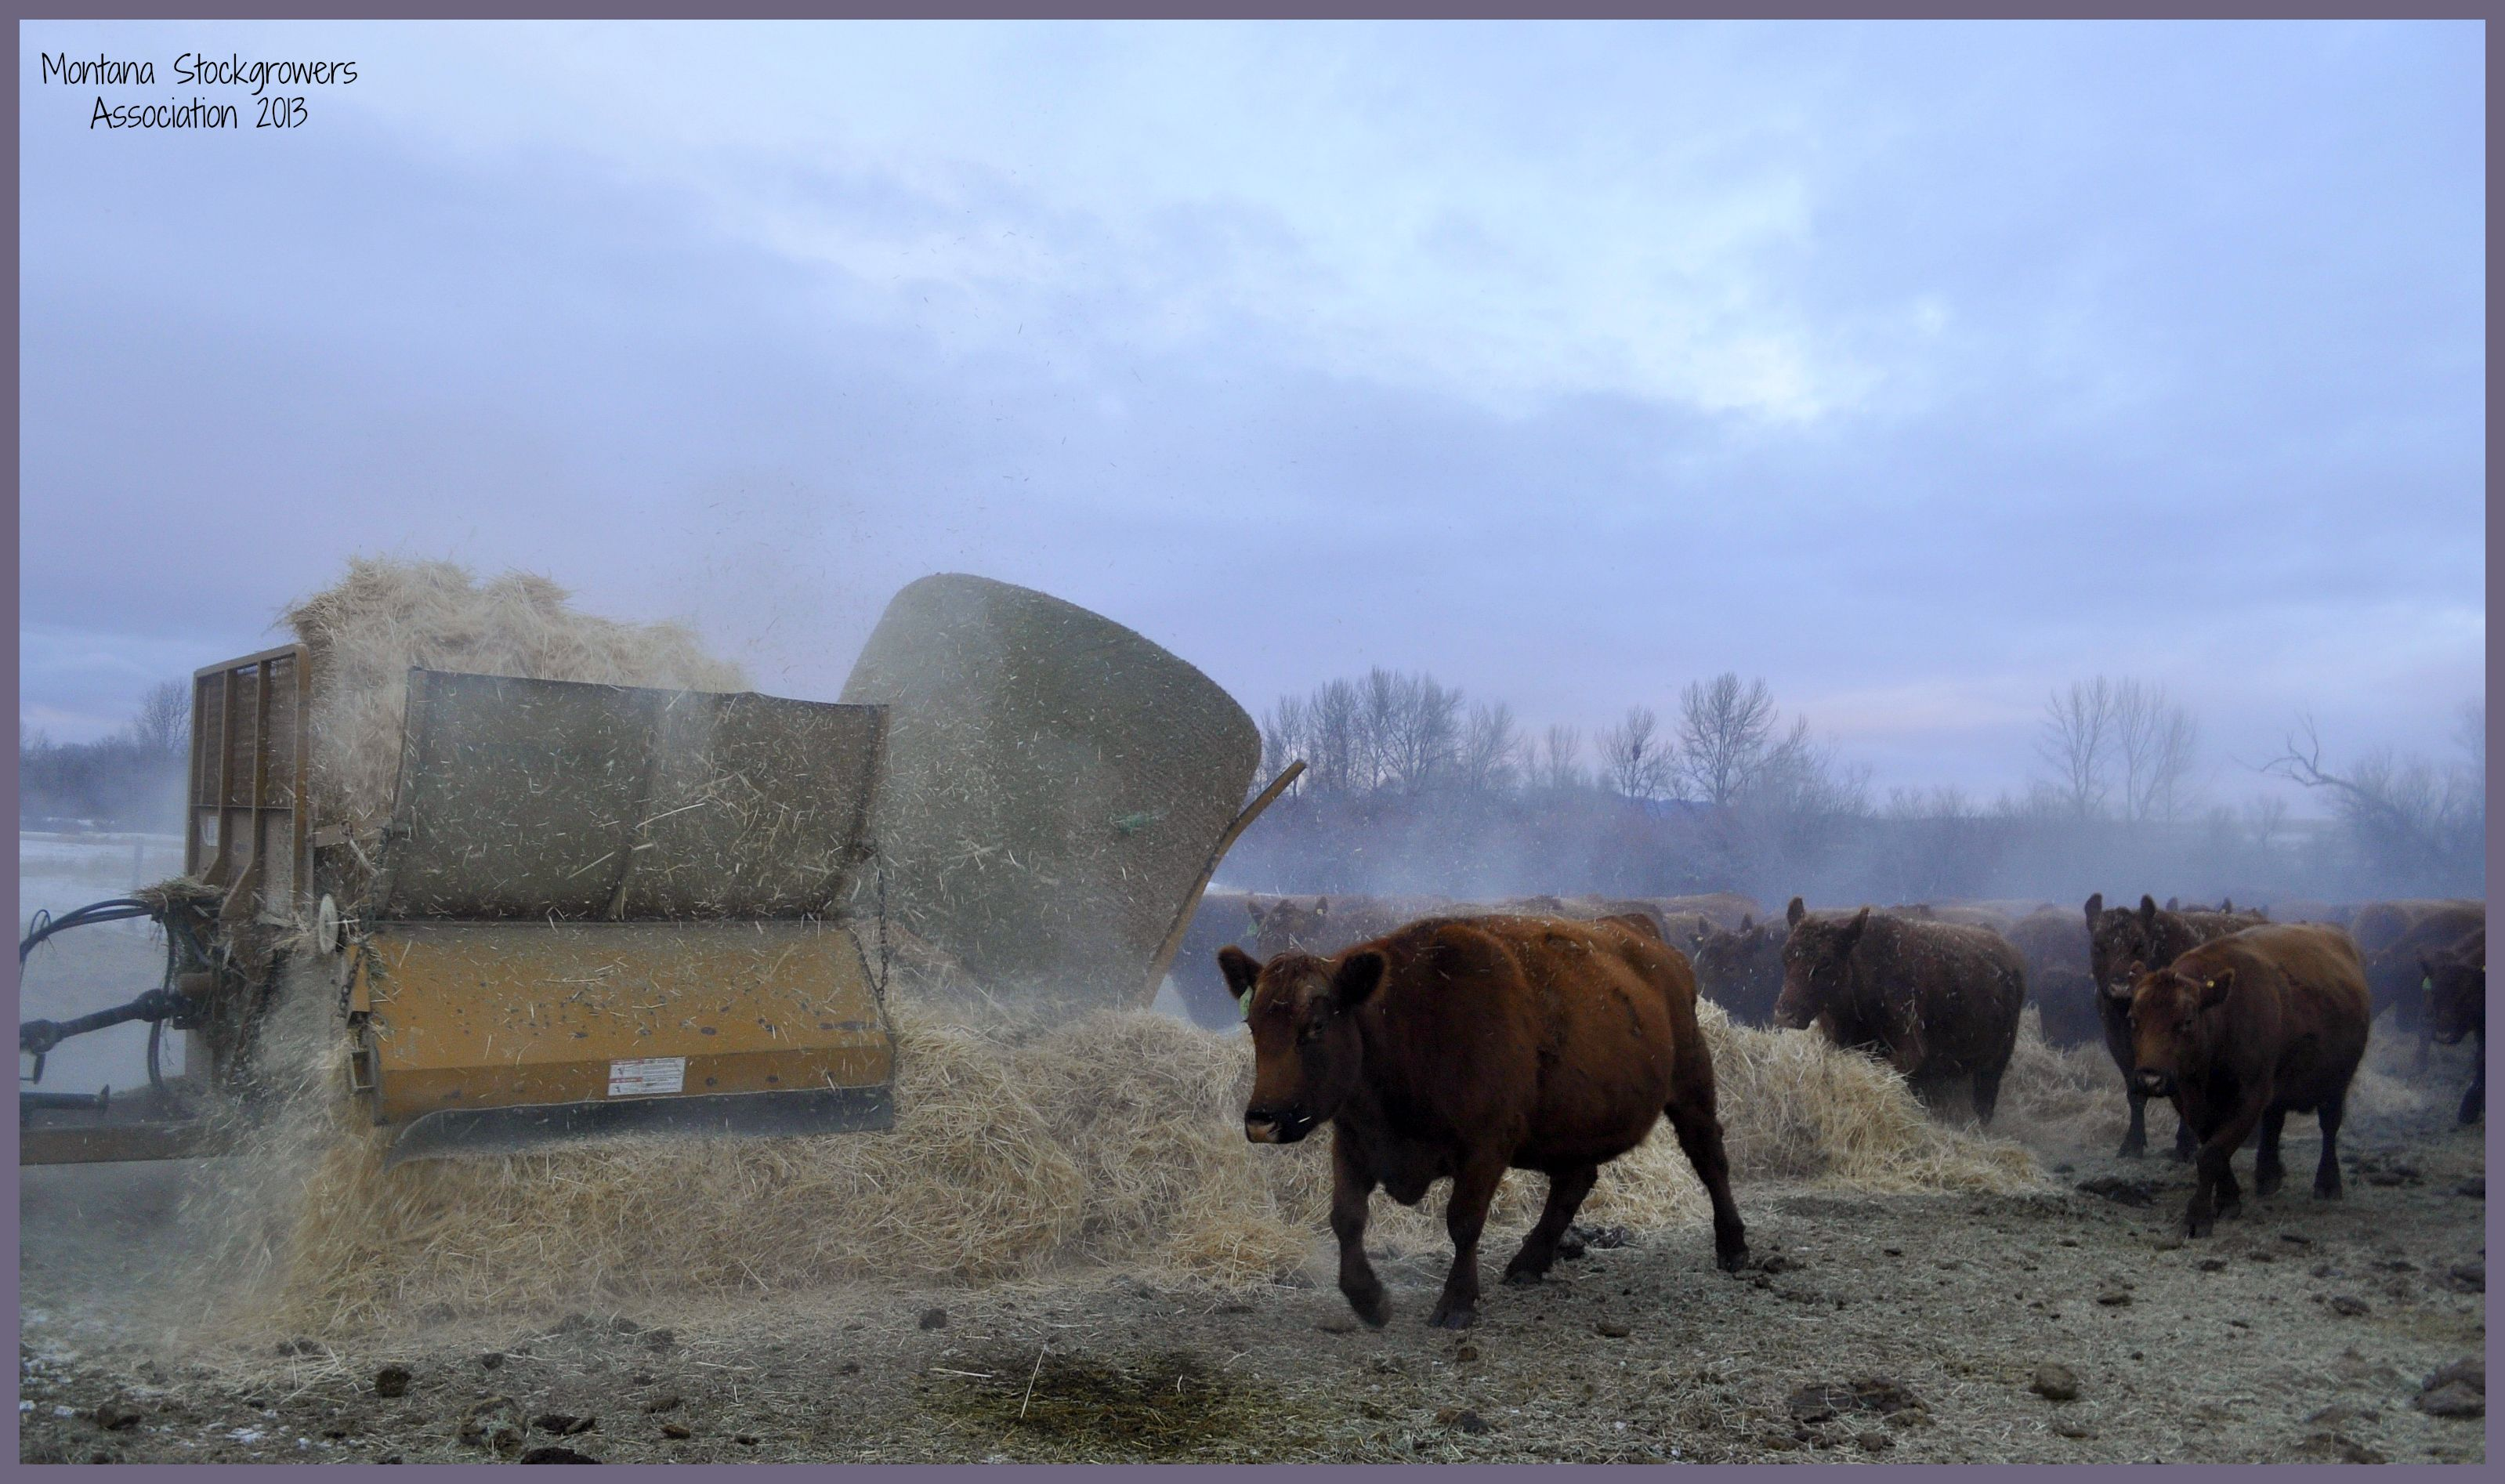 Feed Hay Feeding The Cows In Montana It S Winter So Ranchers Must Feed Hay